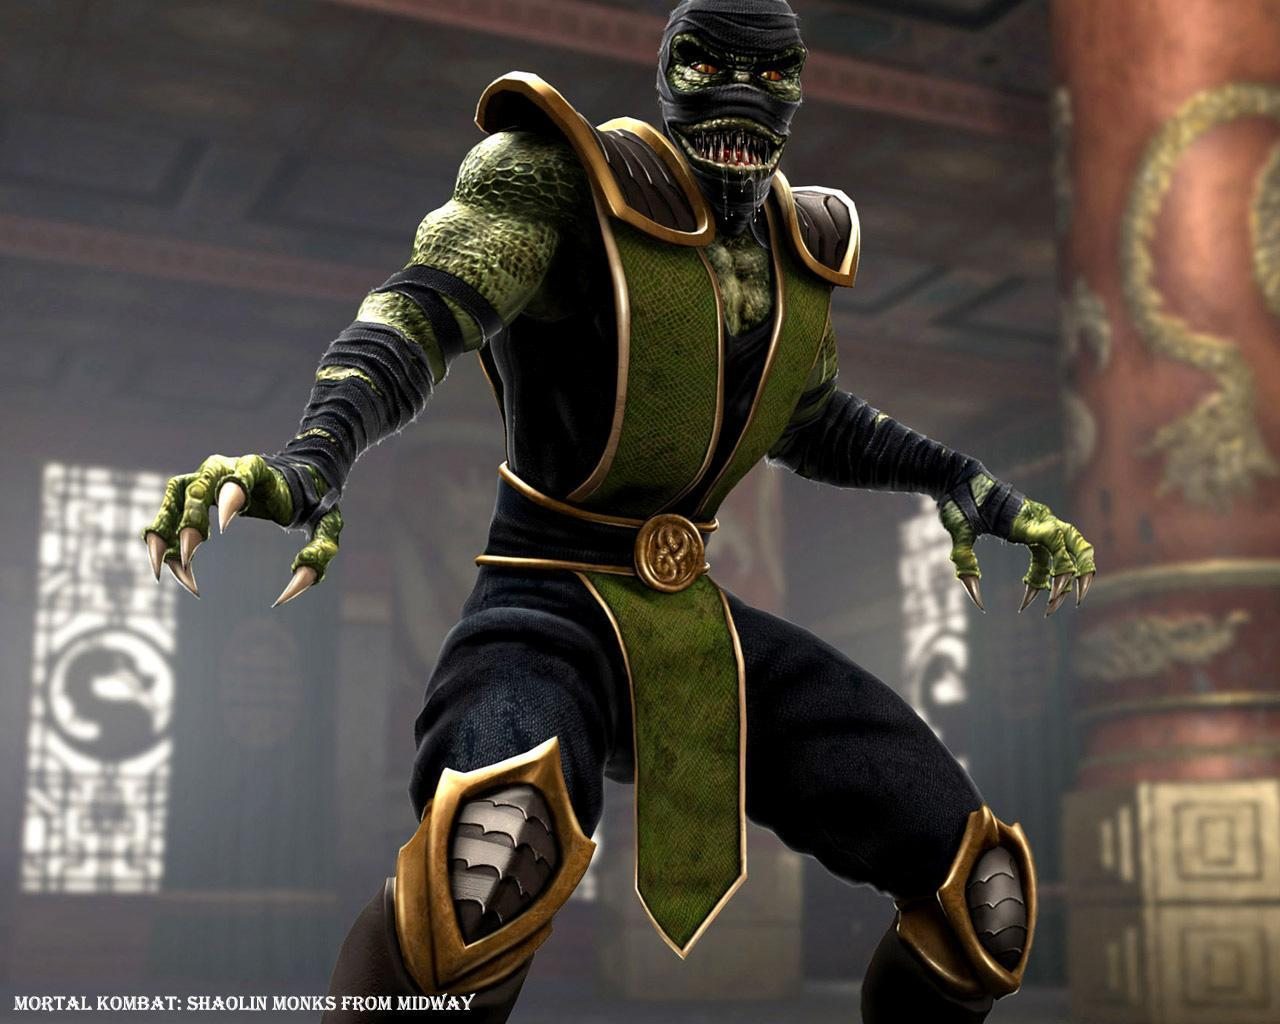 mortal kombat images mk shaolin monks hd wallpaper and background